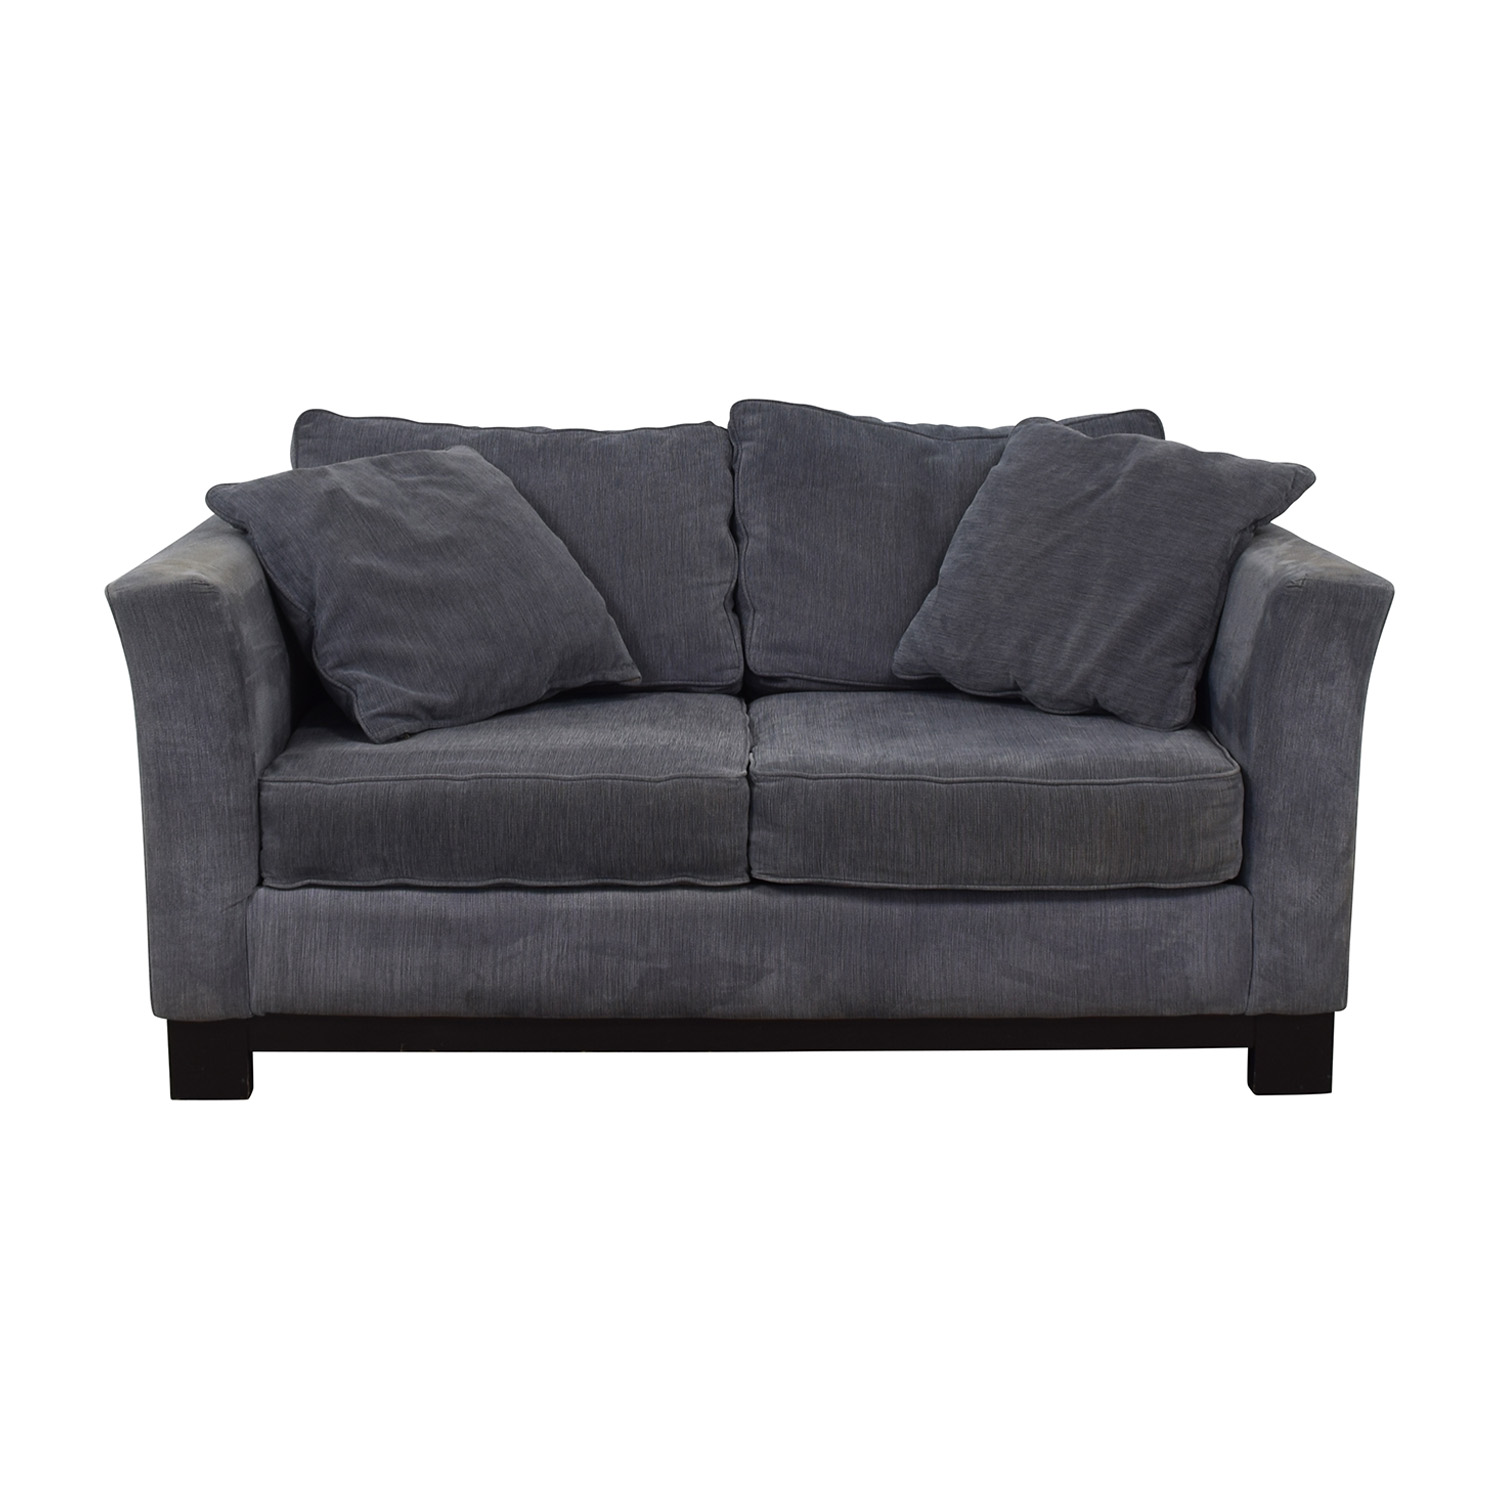 Macy's Macy's Kenton Fabric Loveseat nj